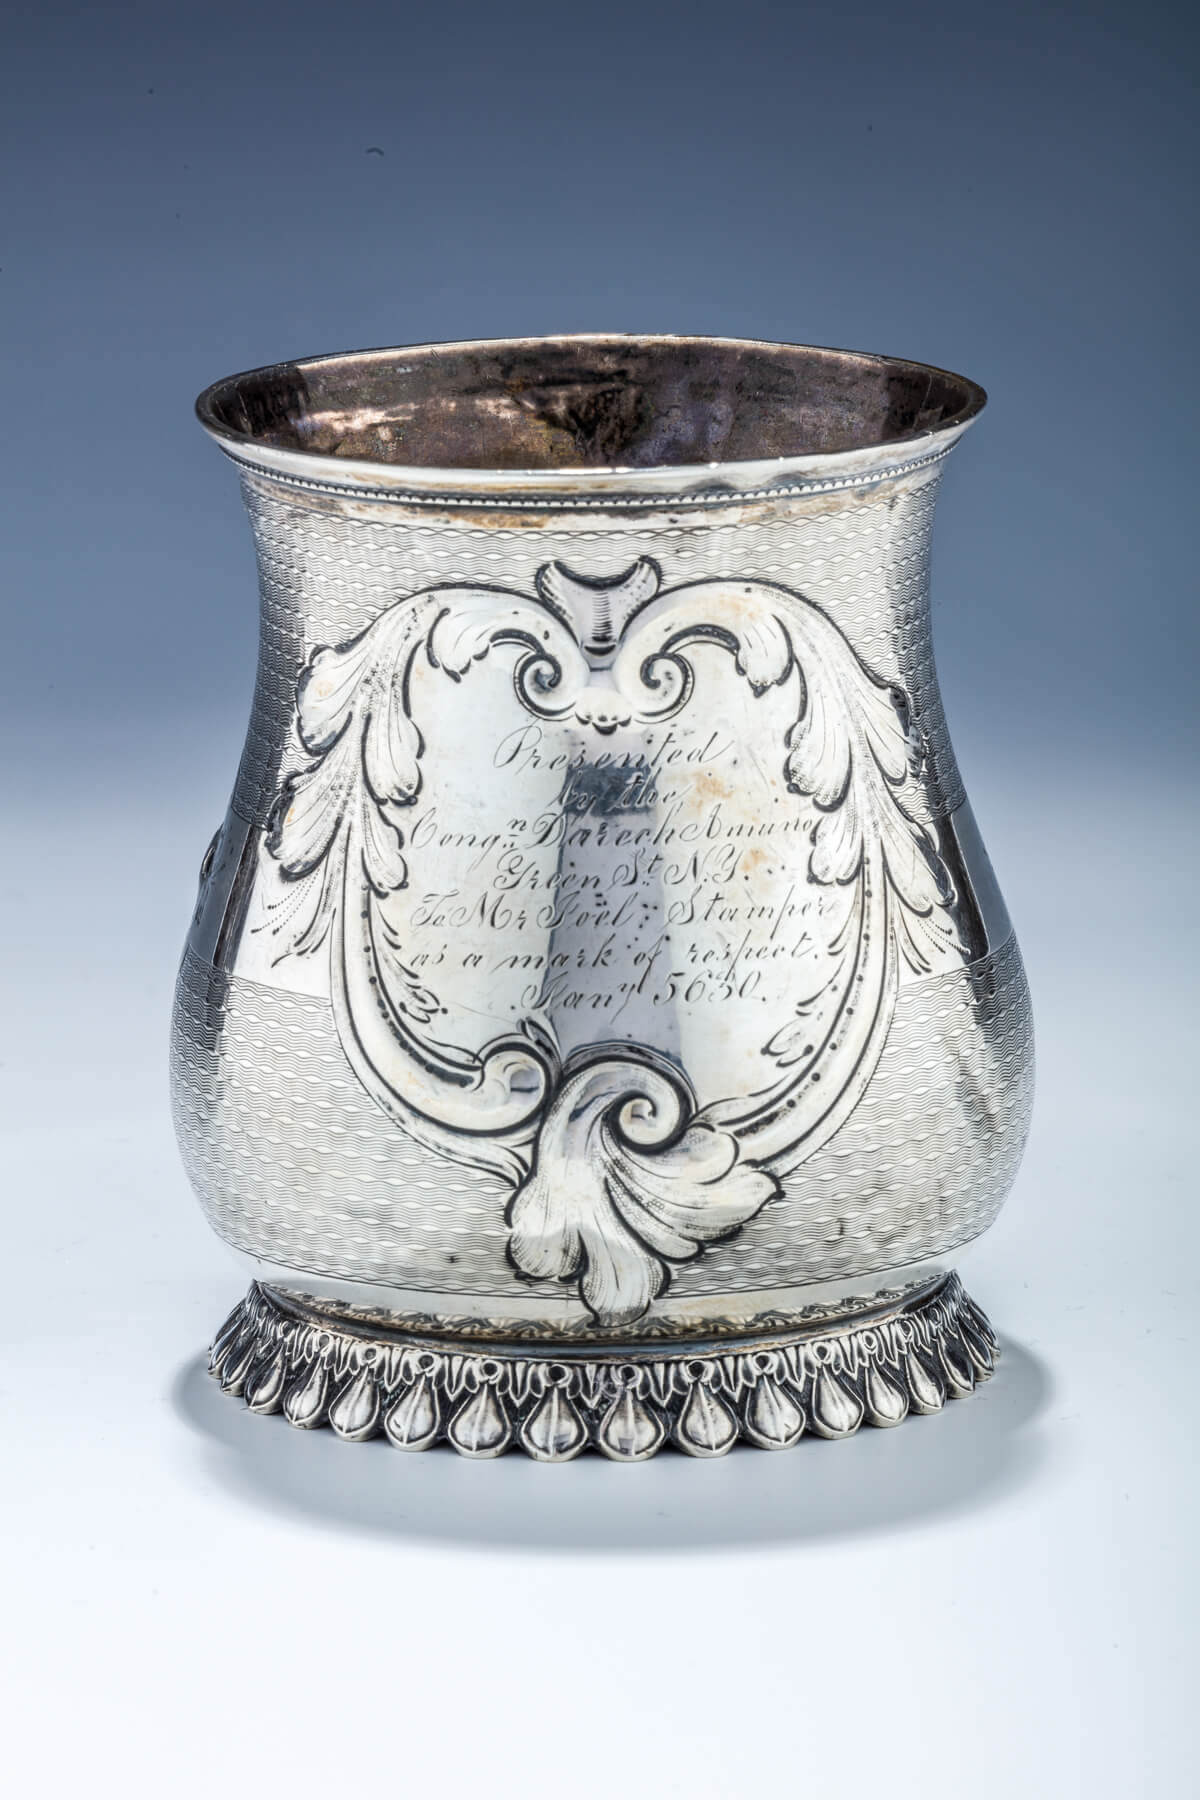 052. AN EARLY COIN SILVER CUP FROM CONGREGATION DARECH AMUNO